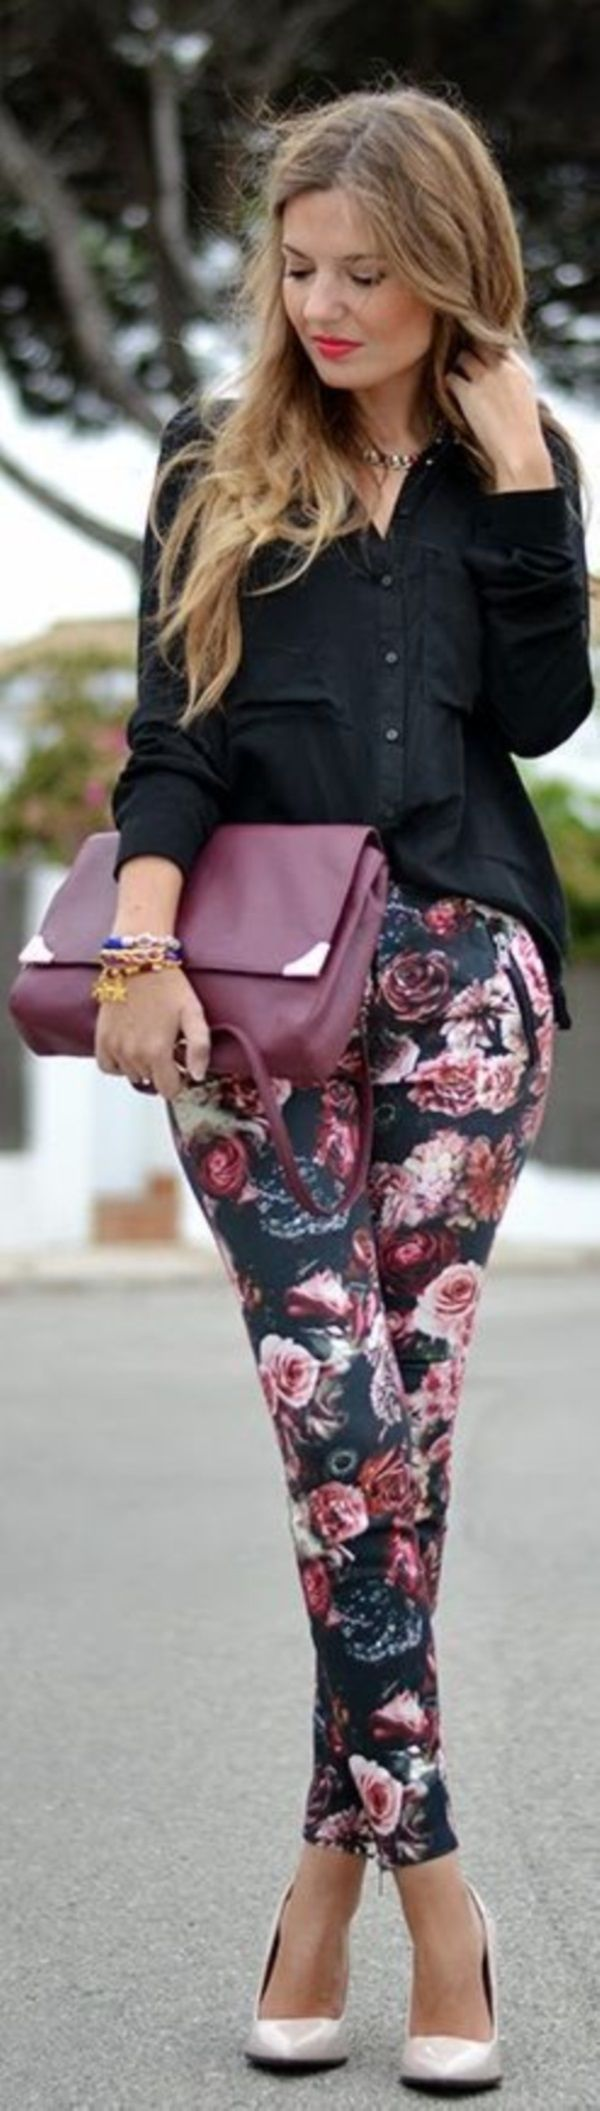 Trendy Outfit Ideas with Floral Pants (19)